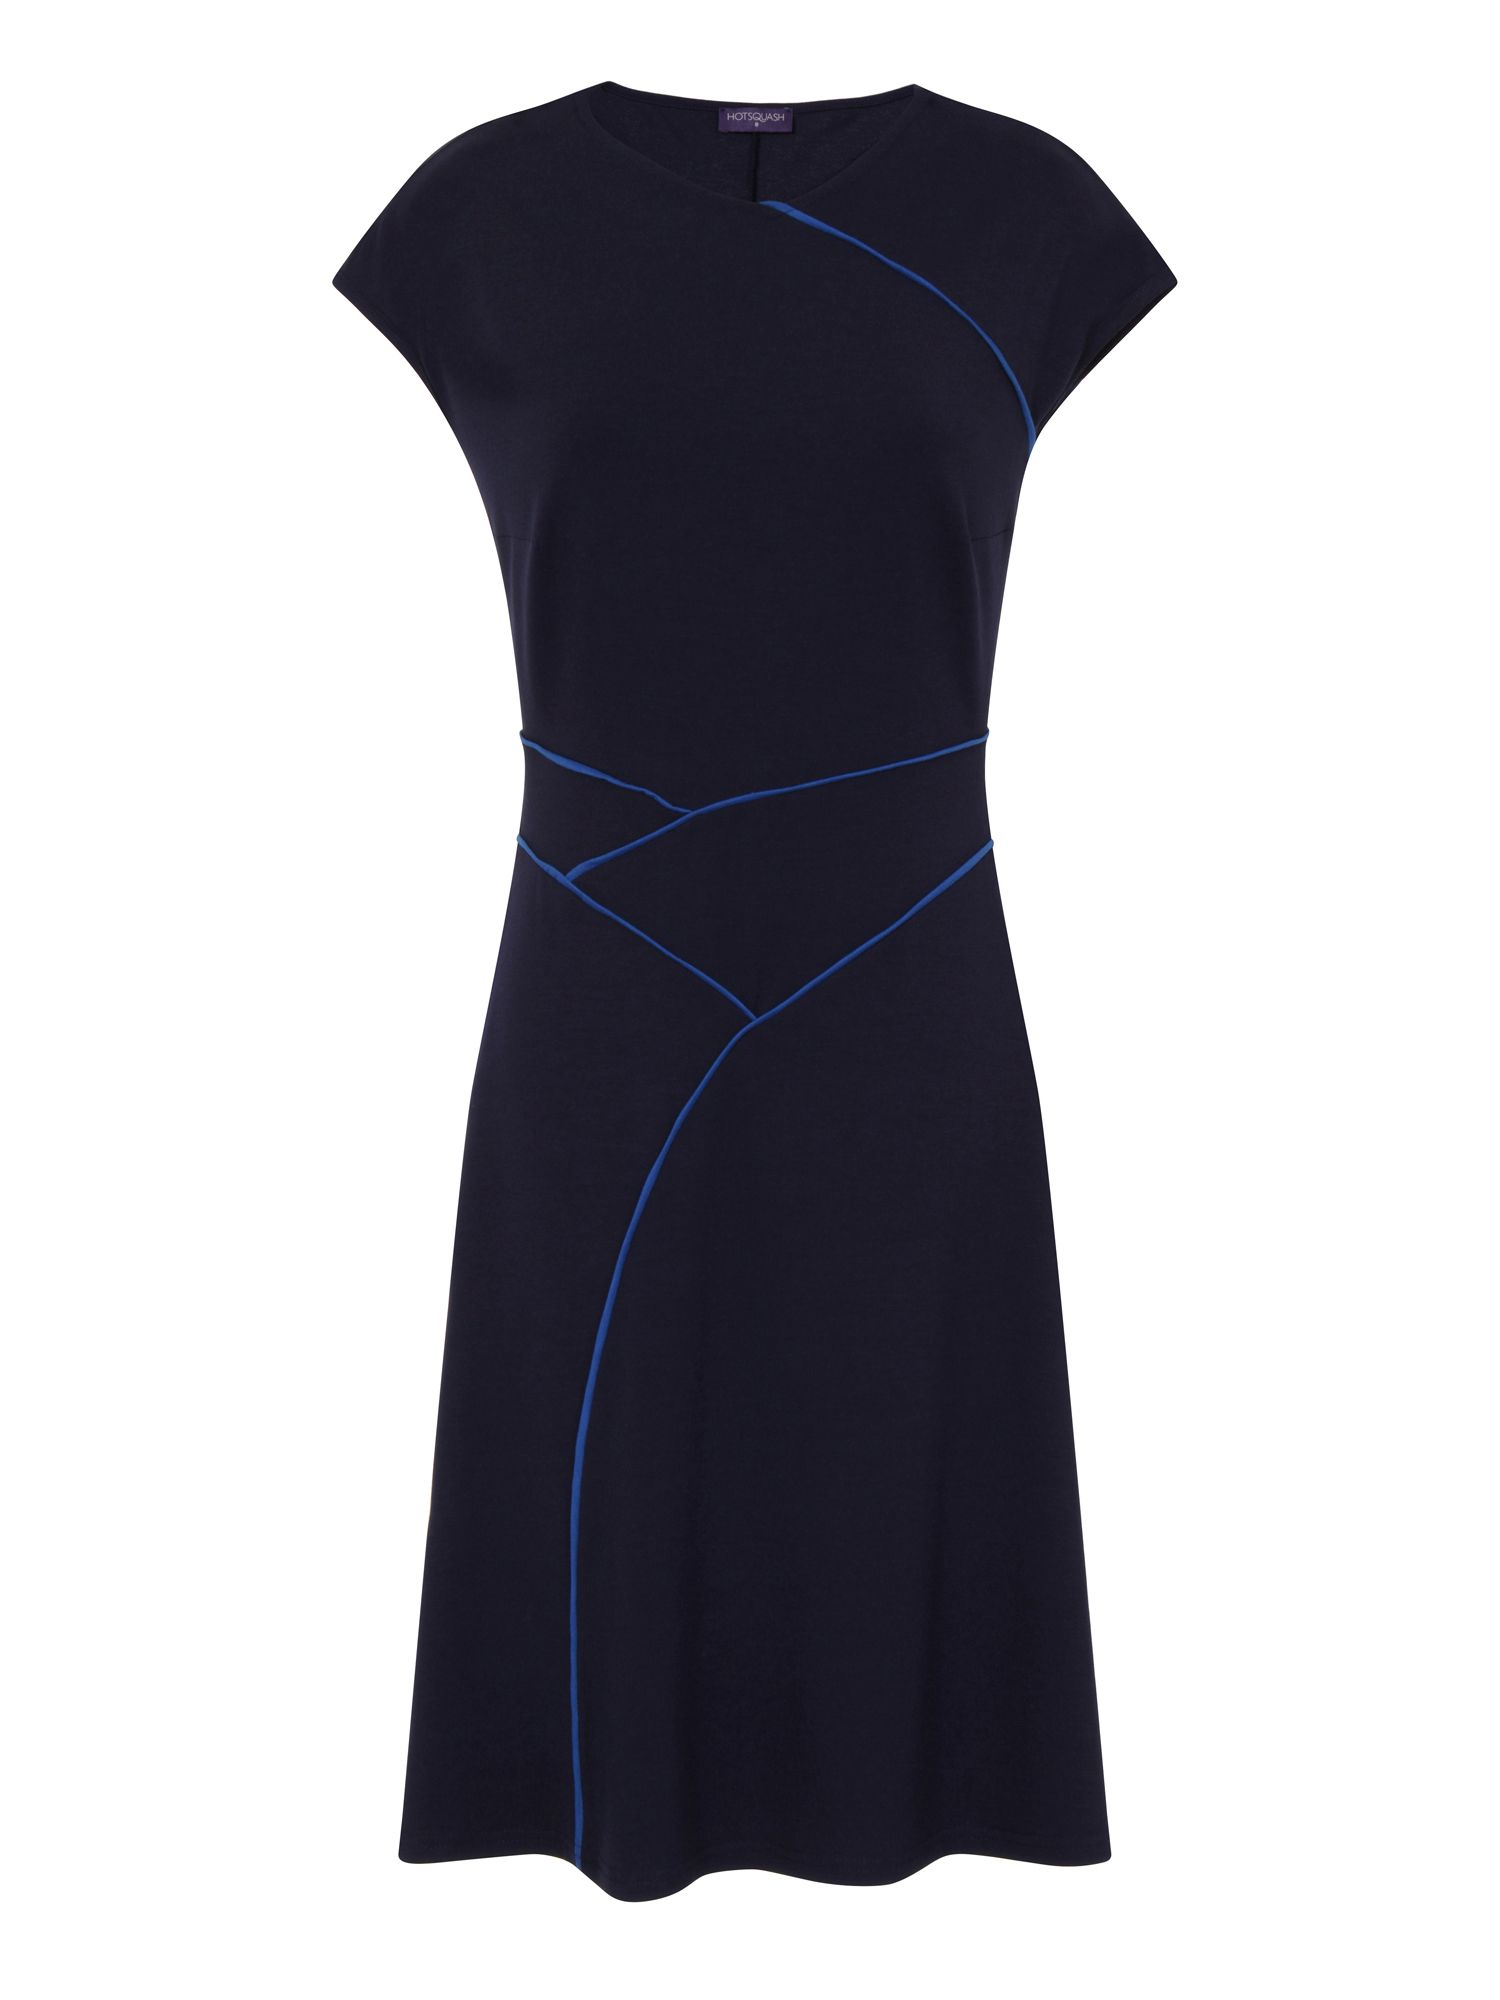 HotSquash Summer Dress in CoolFresh Fabric, Blue